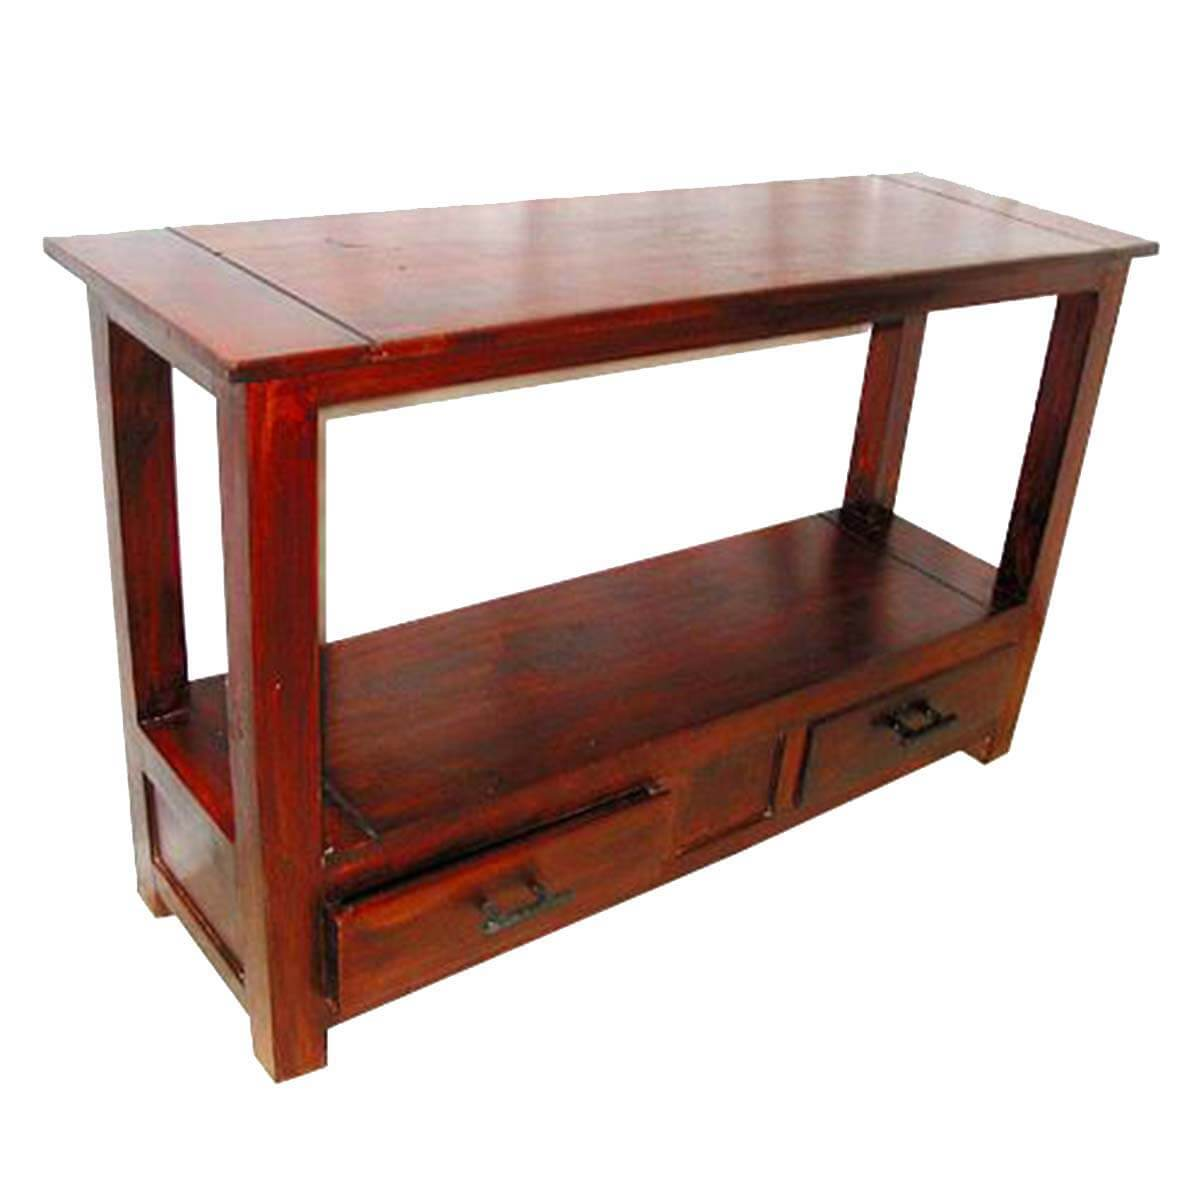 Solid wood console hall entry foyer table furniture